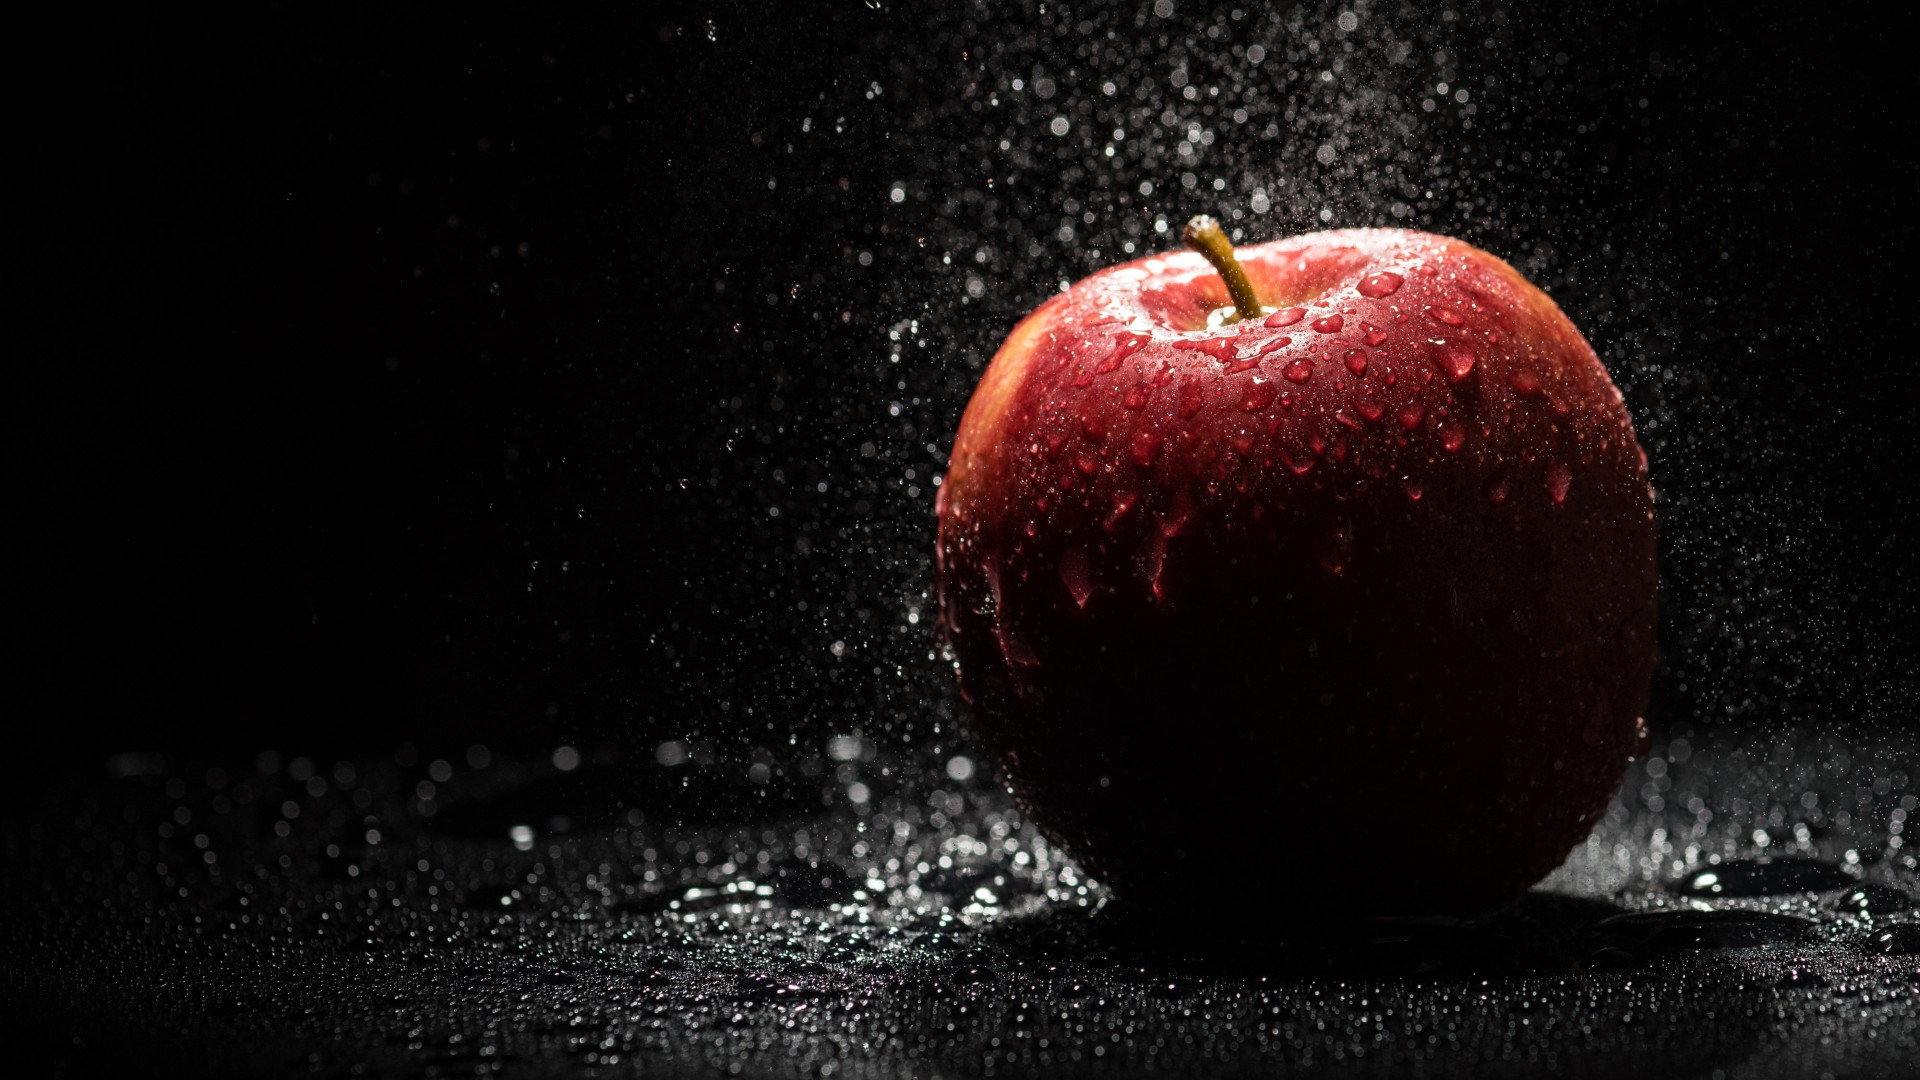 The apple, natural red apple wallpaper 1920x1080